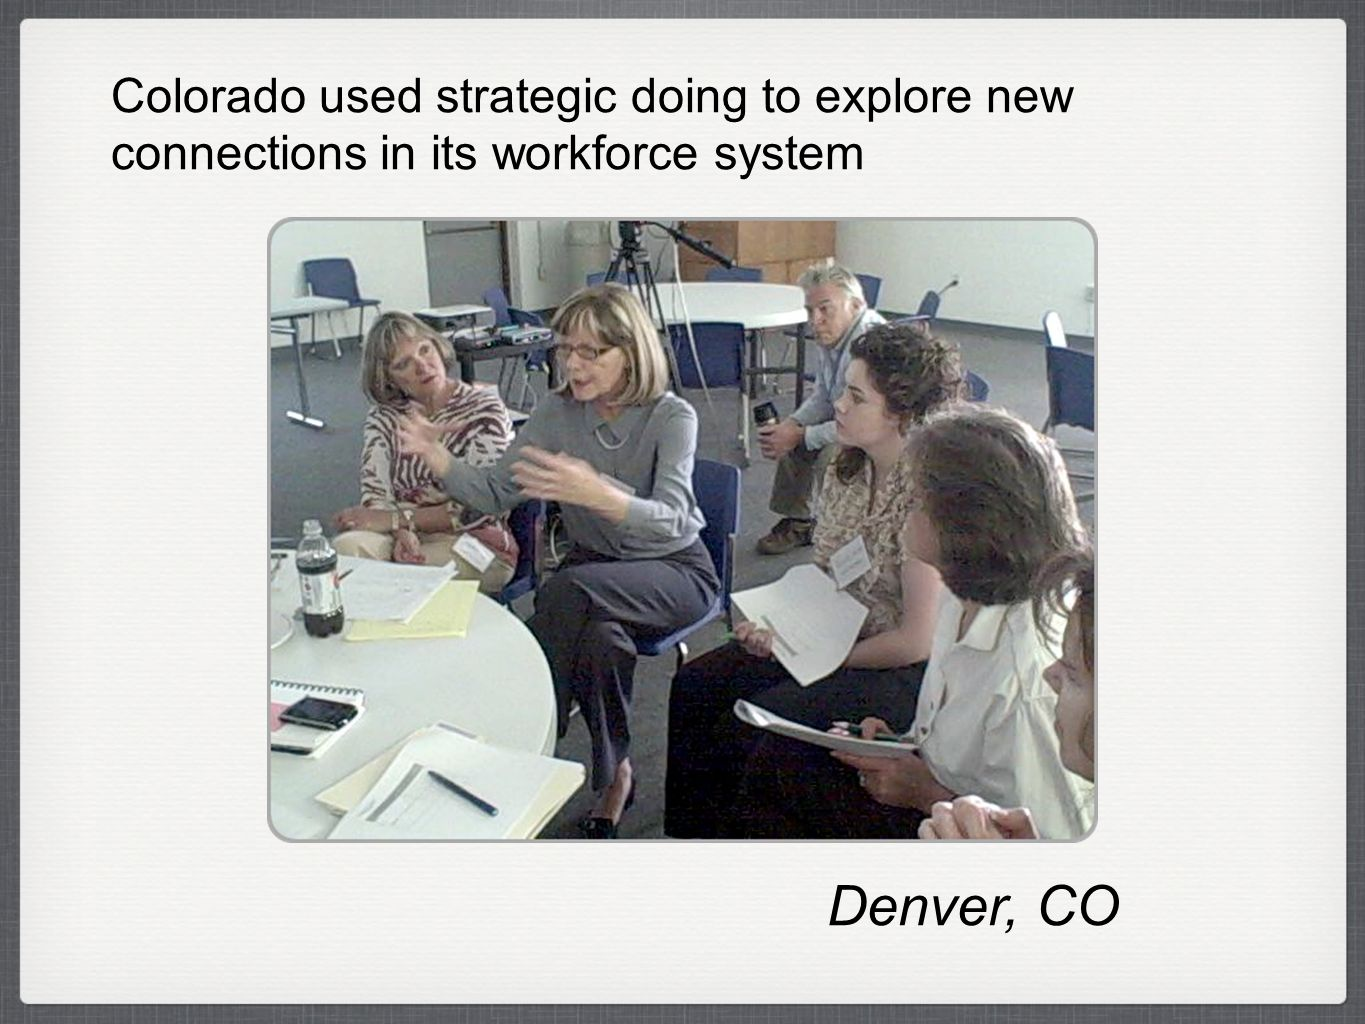 Denver, CO Colorado used strategic doing to explore new connections in its workforce system